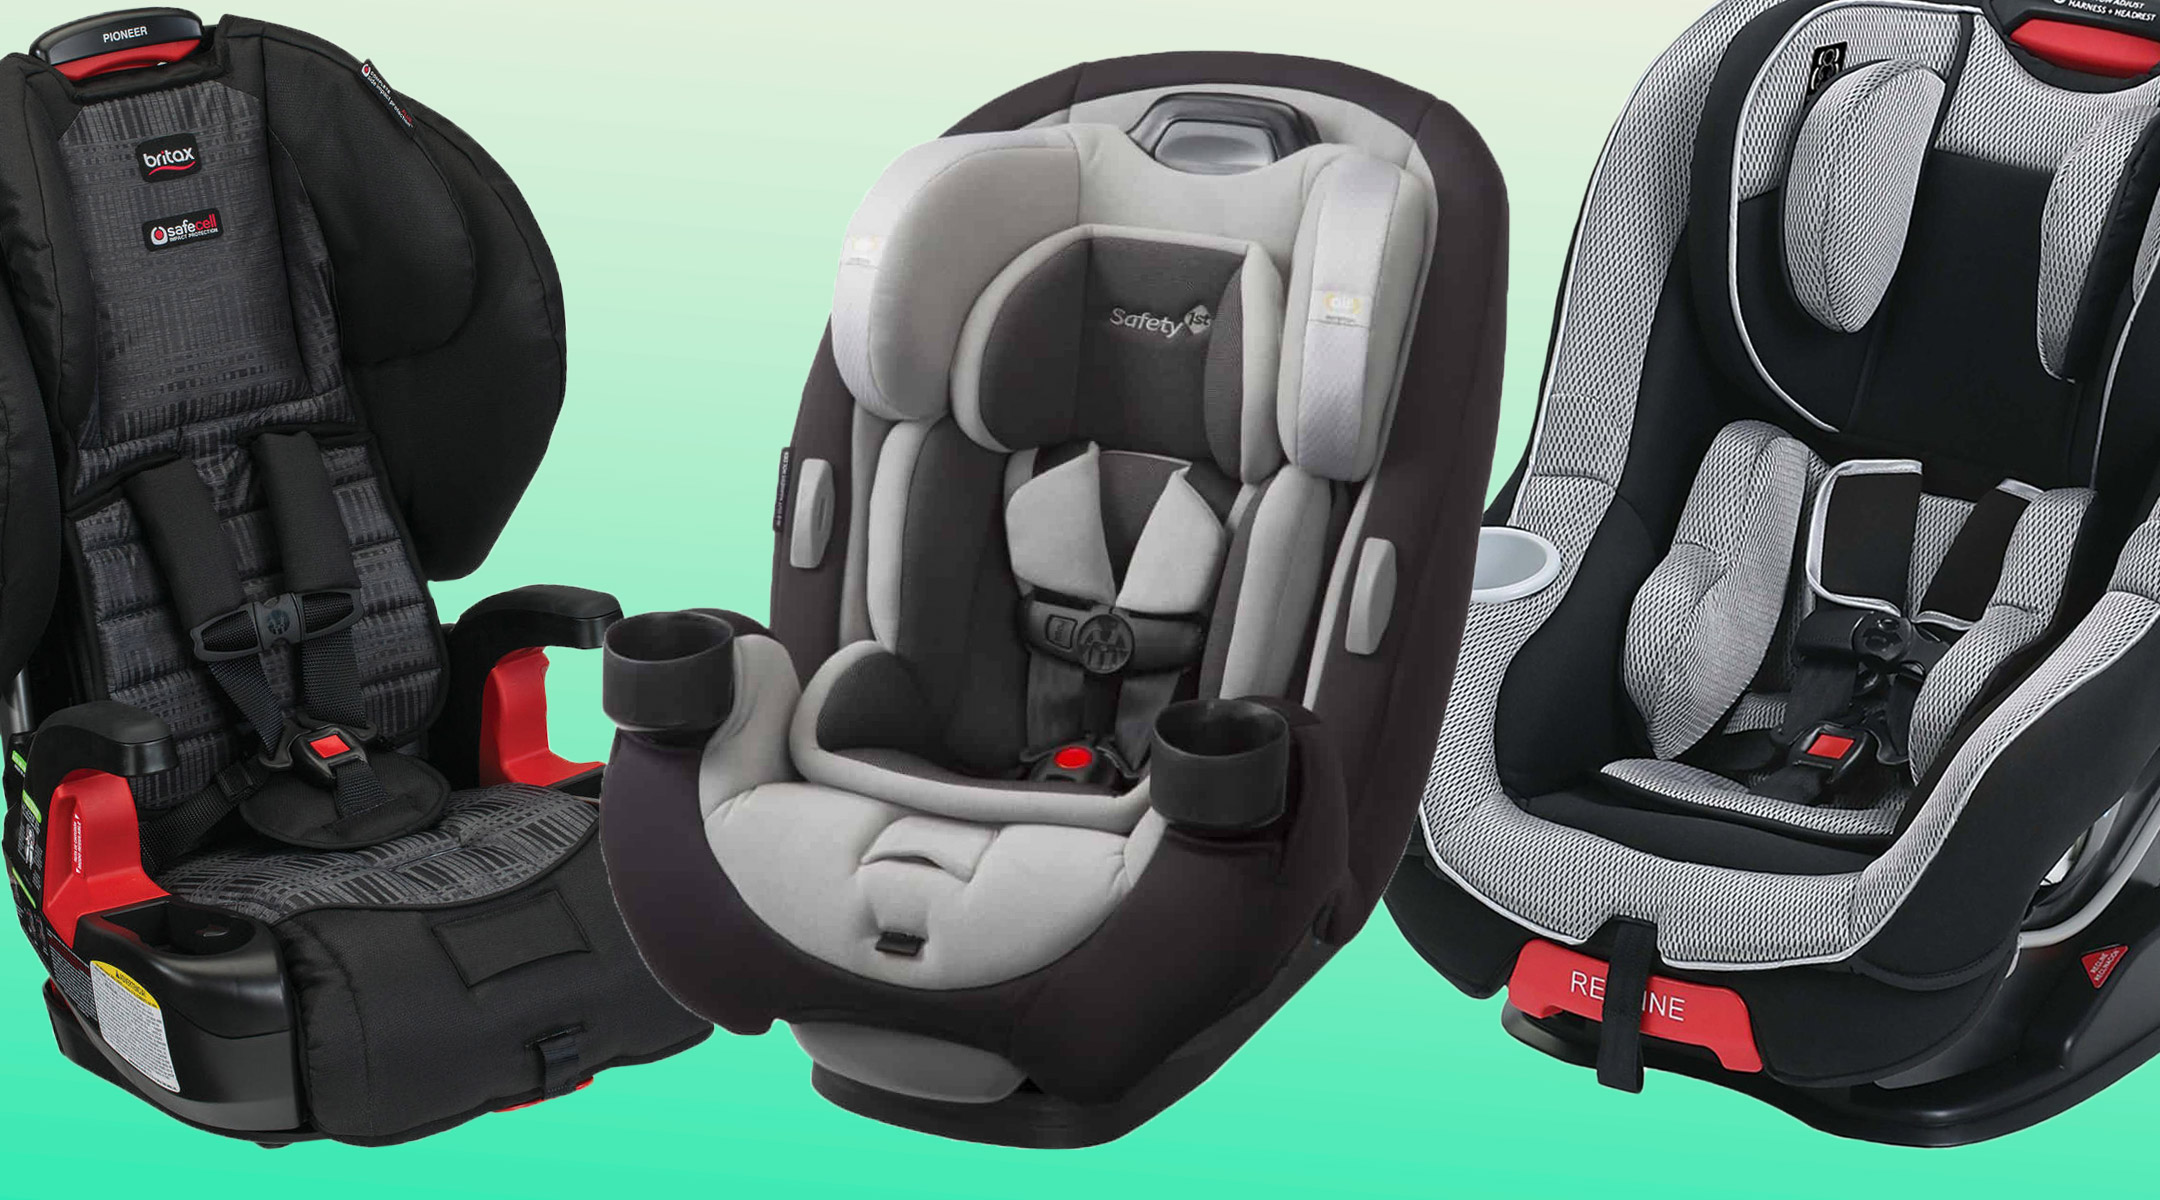 Baby Car Seats At Target All The Details About Target S Big Baby Gear Sale Happening